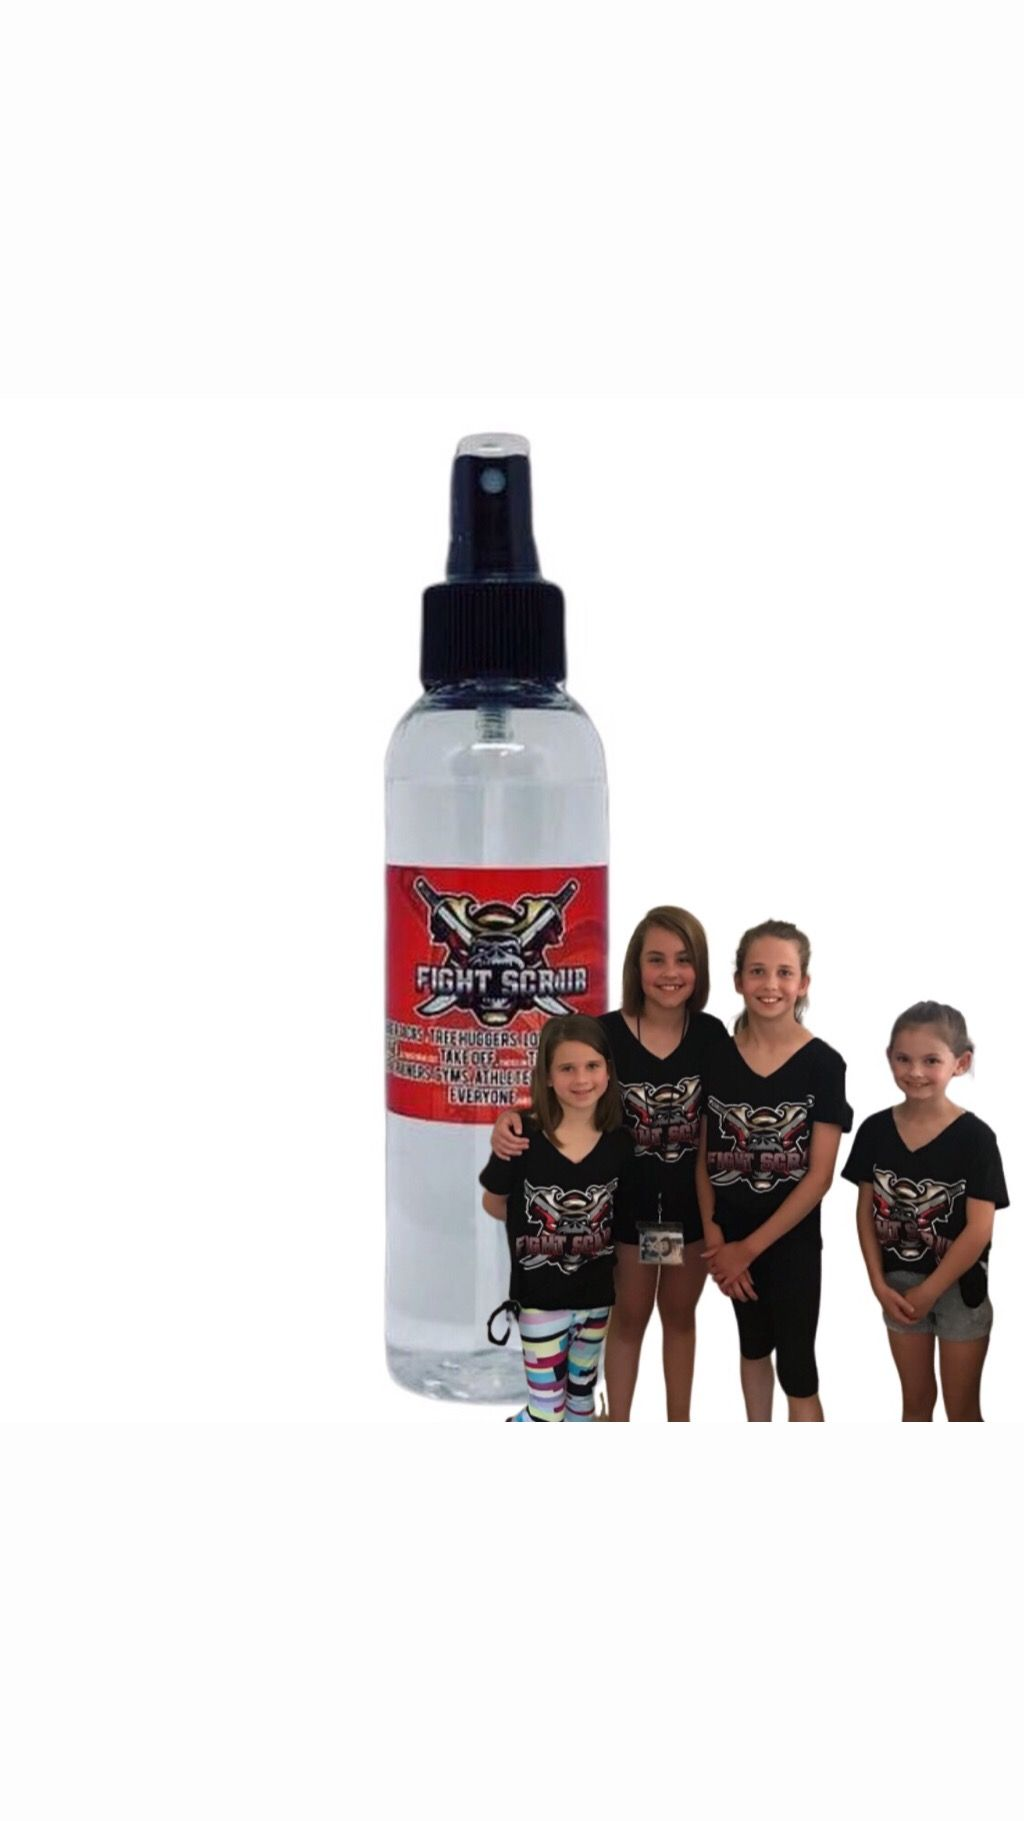 Pin On Fight Scrub Defender Spray Antibacterial Spray Essential